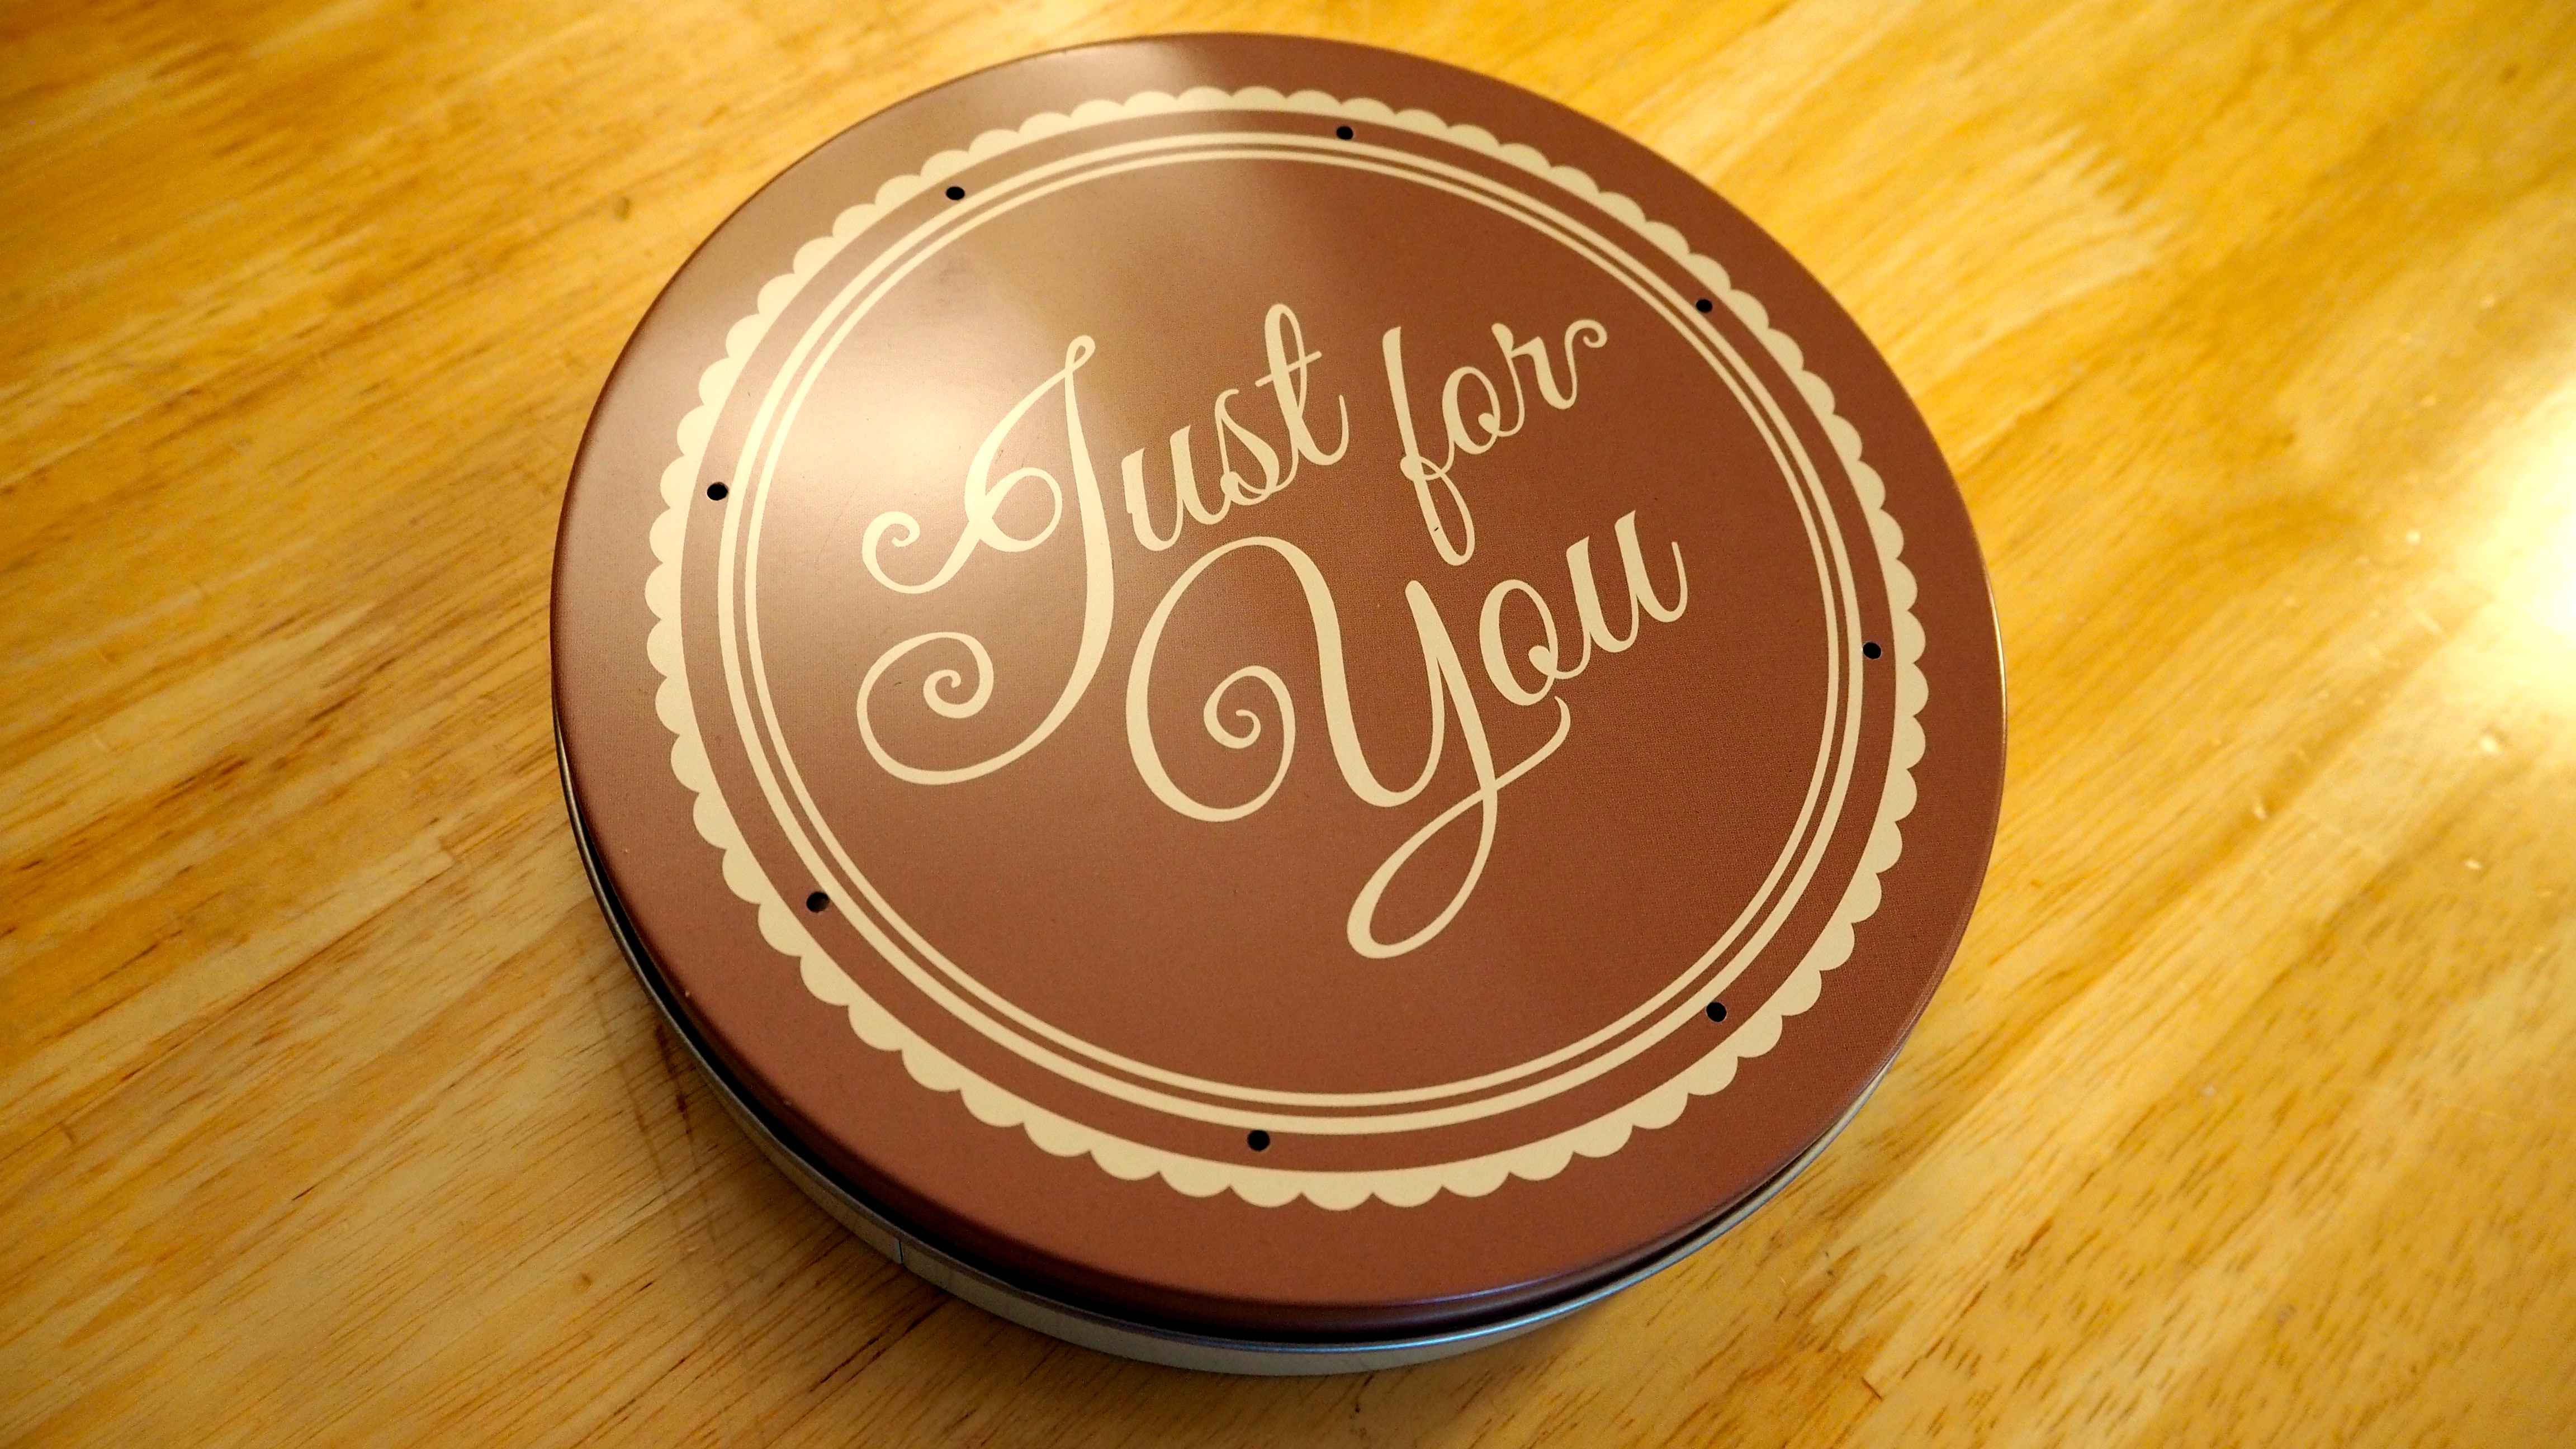 Just for you Baker Days cake tin